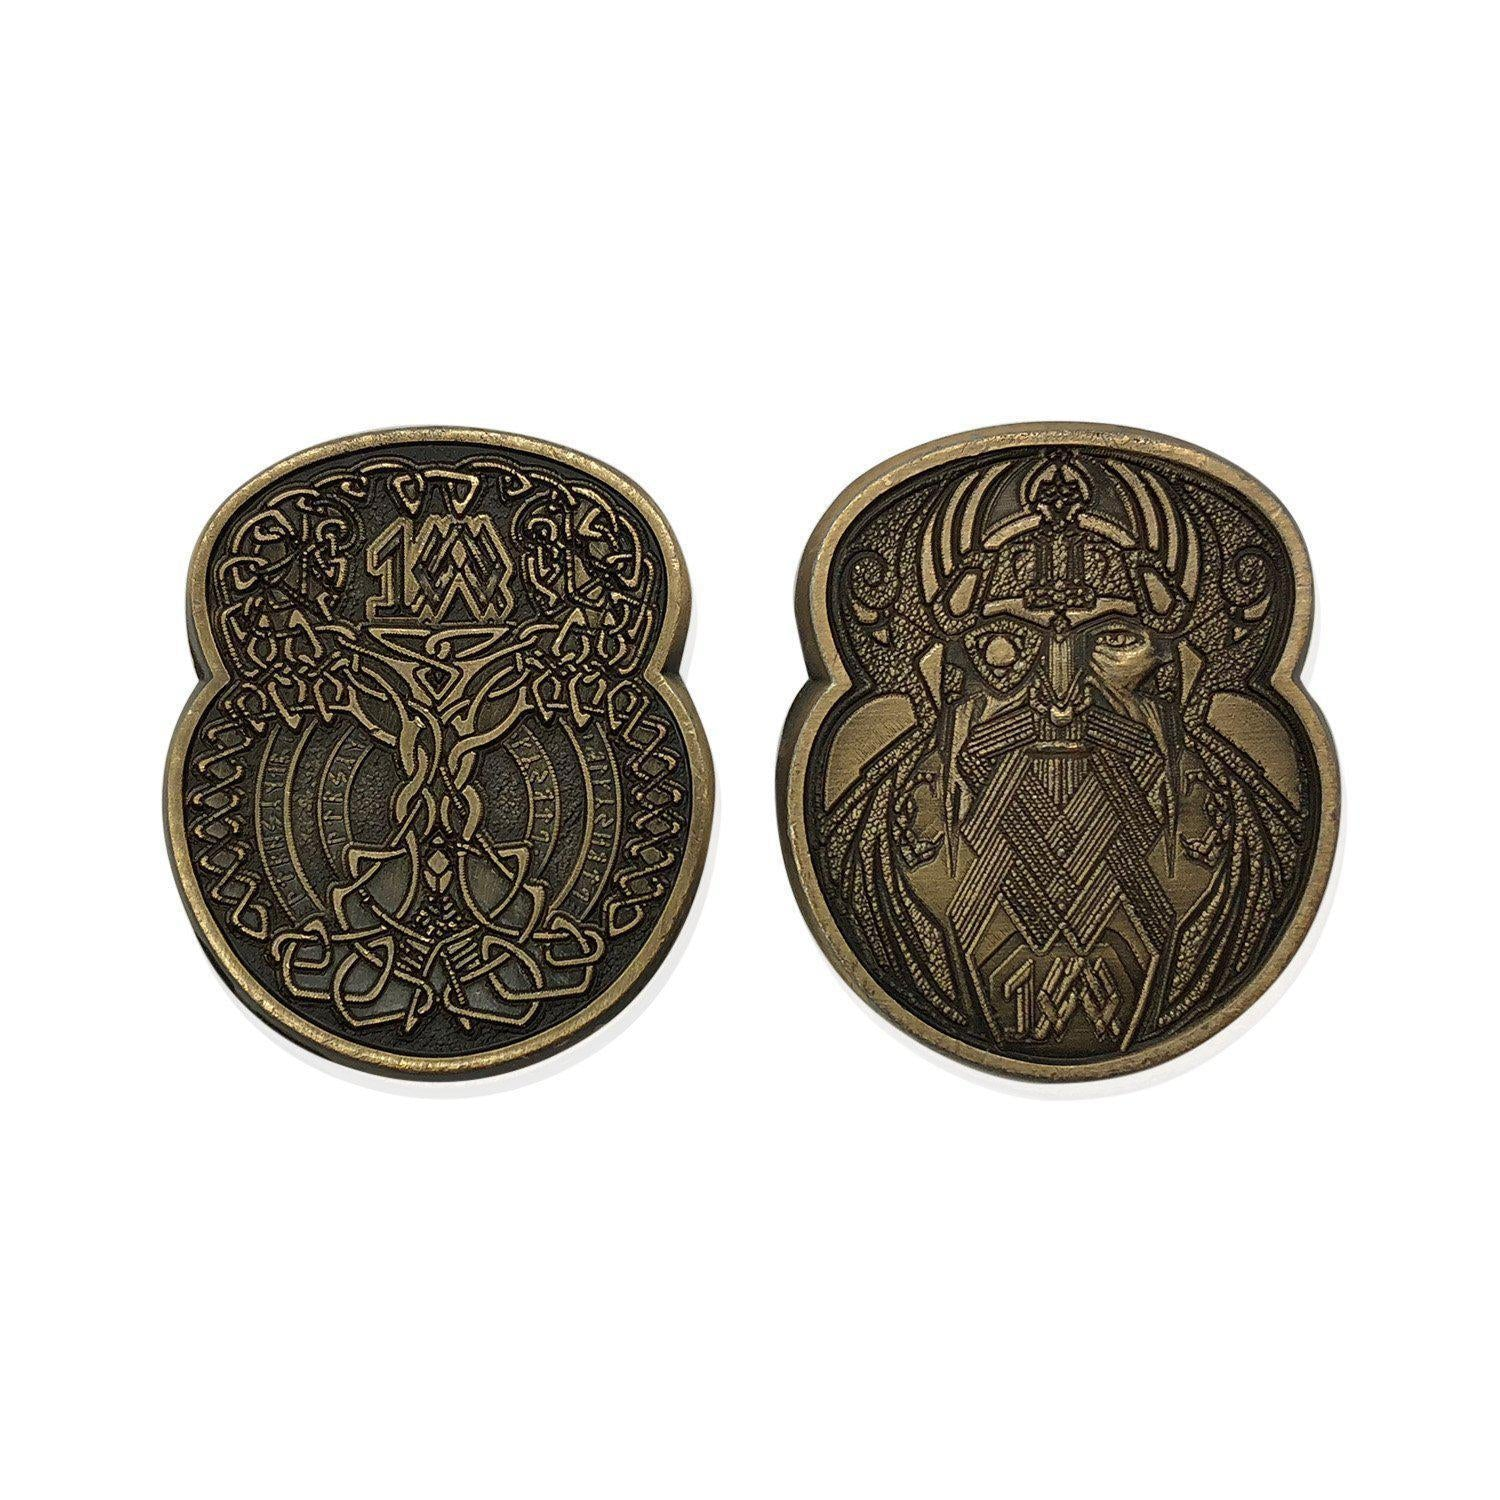 Adventure Coins Norse Metal Coins Set Of 10 Norse Foundry Free shipping on all orders over $75. usd